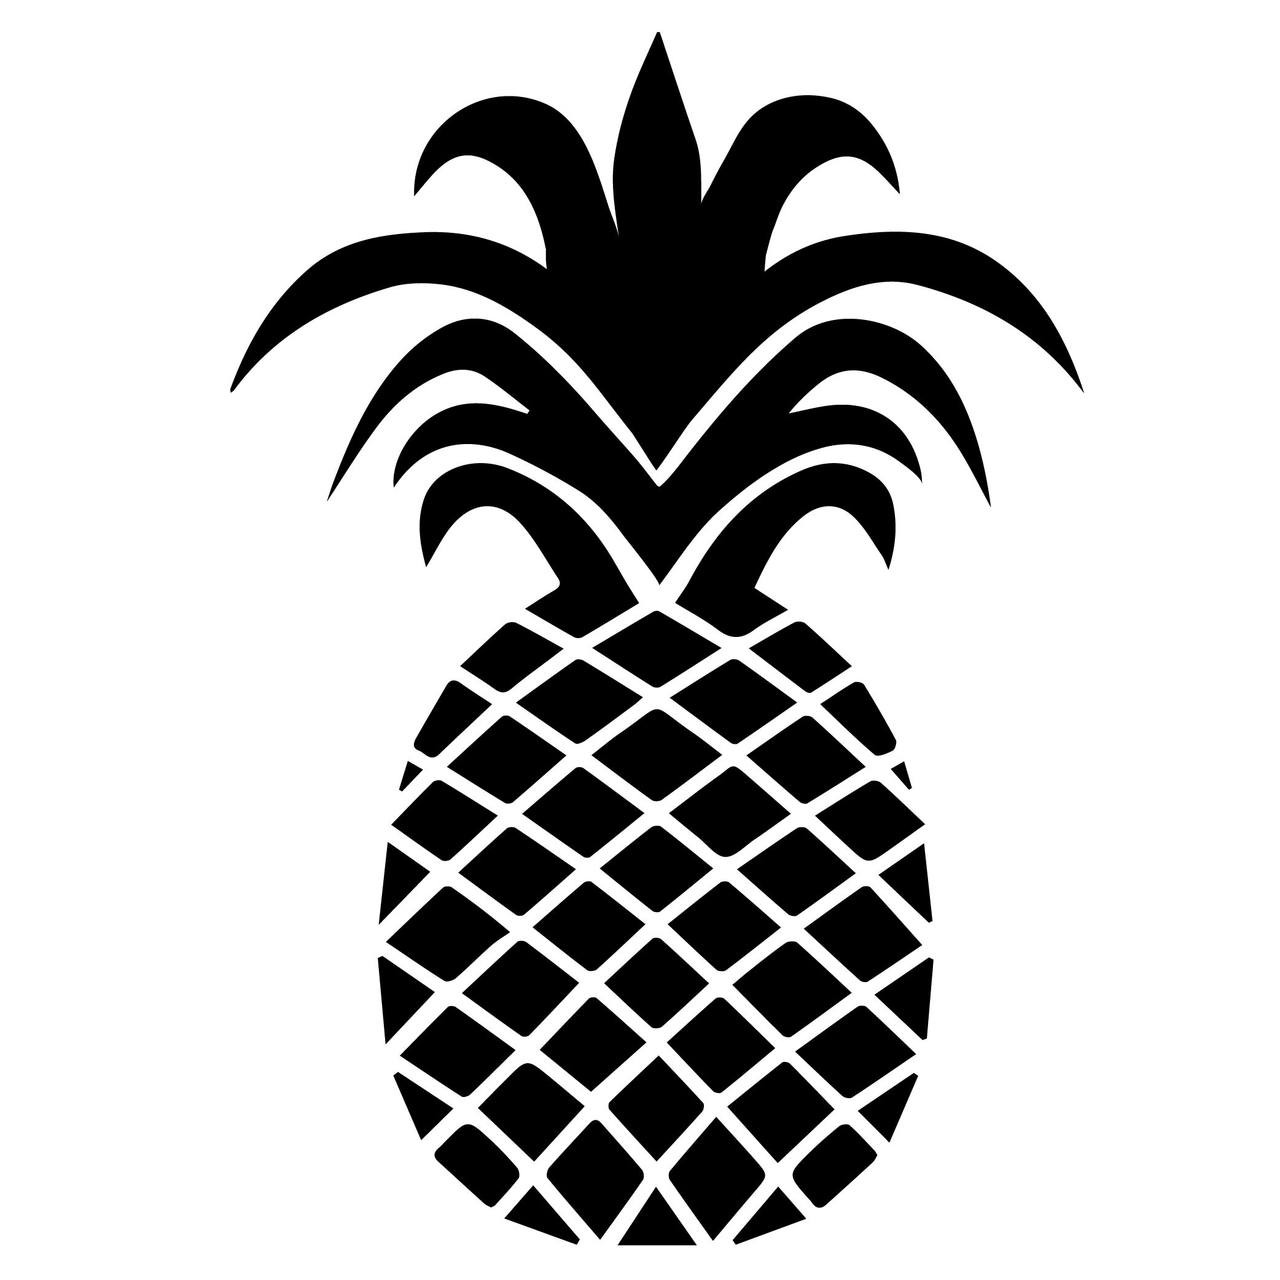 It's just a picture of Sweet Svg Cut Files Free Download